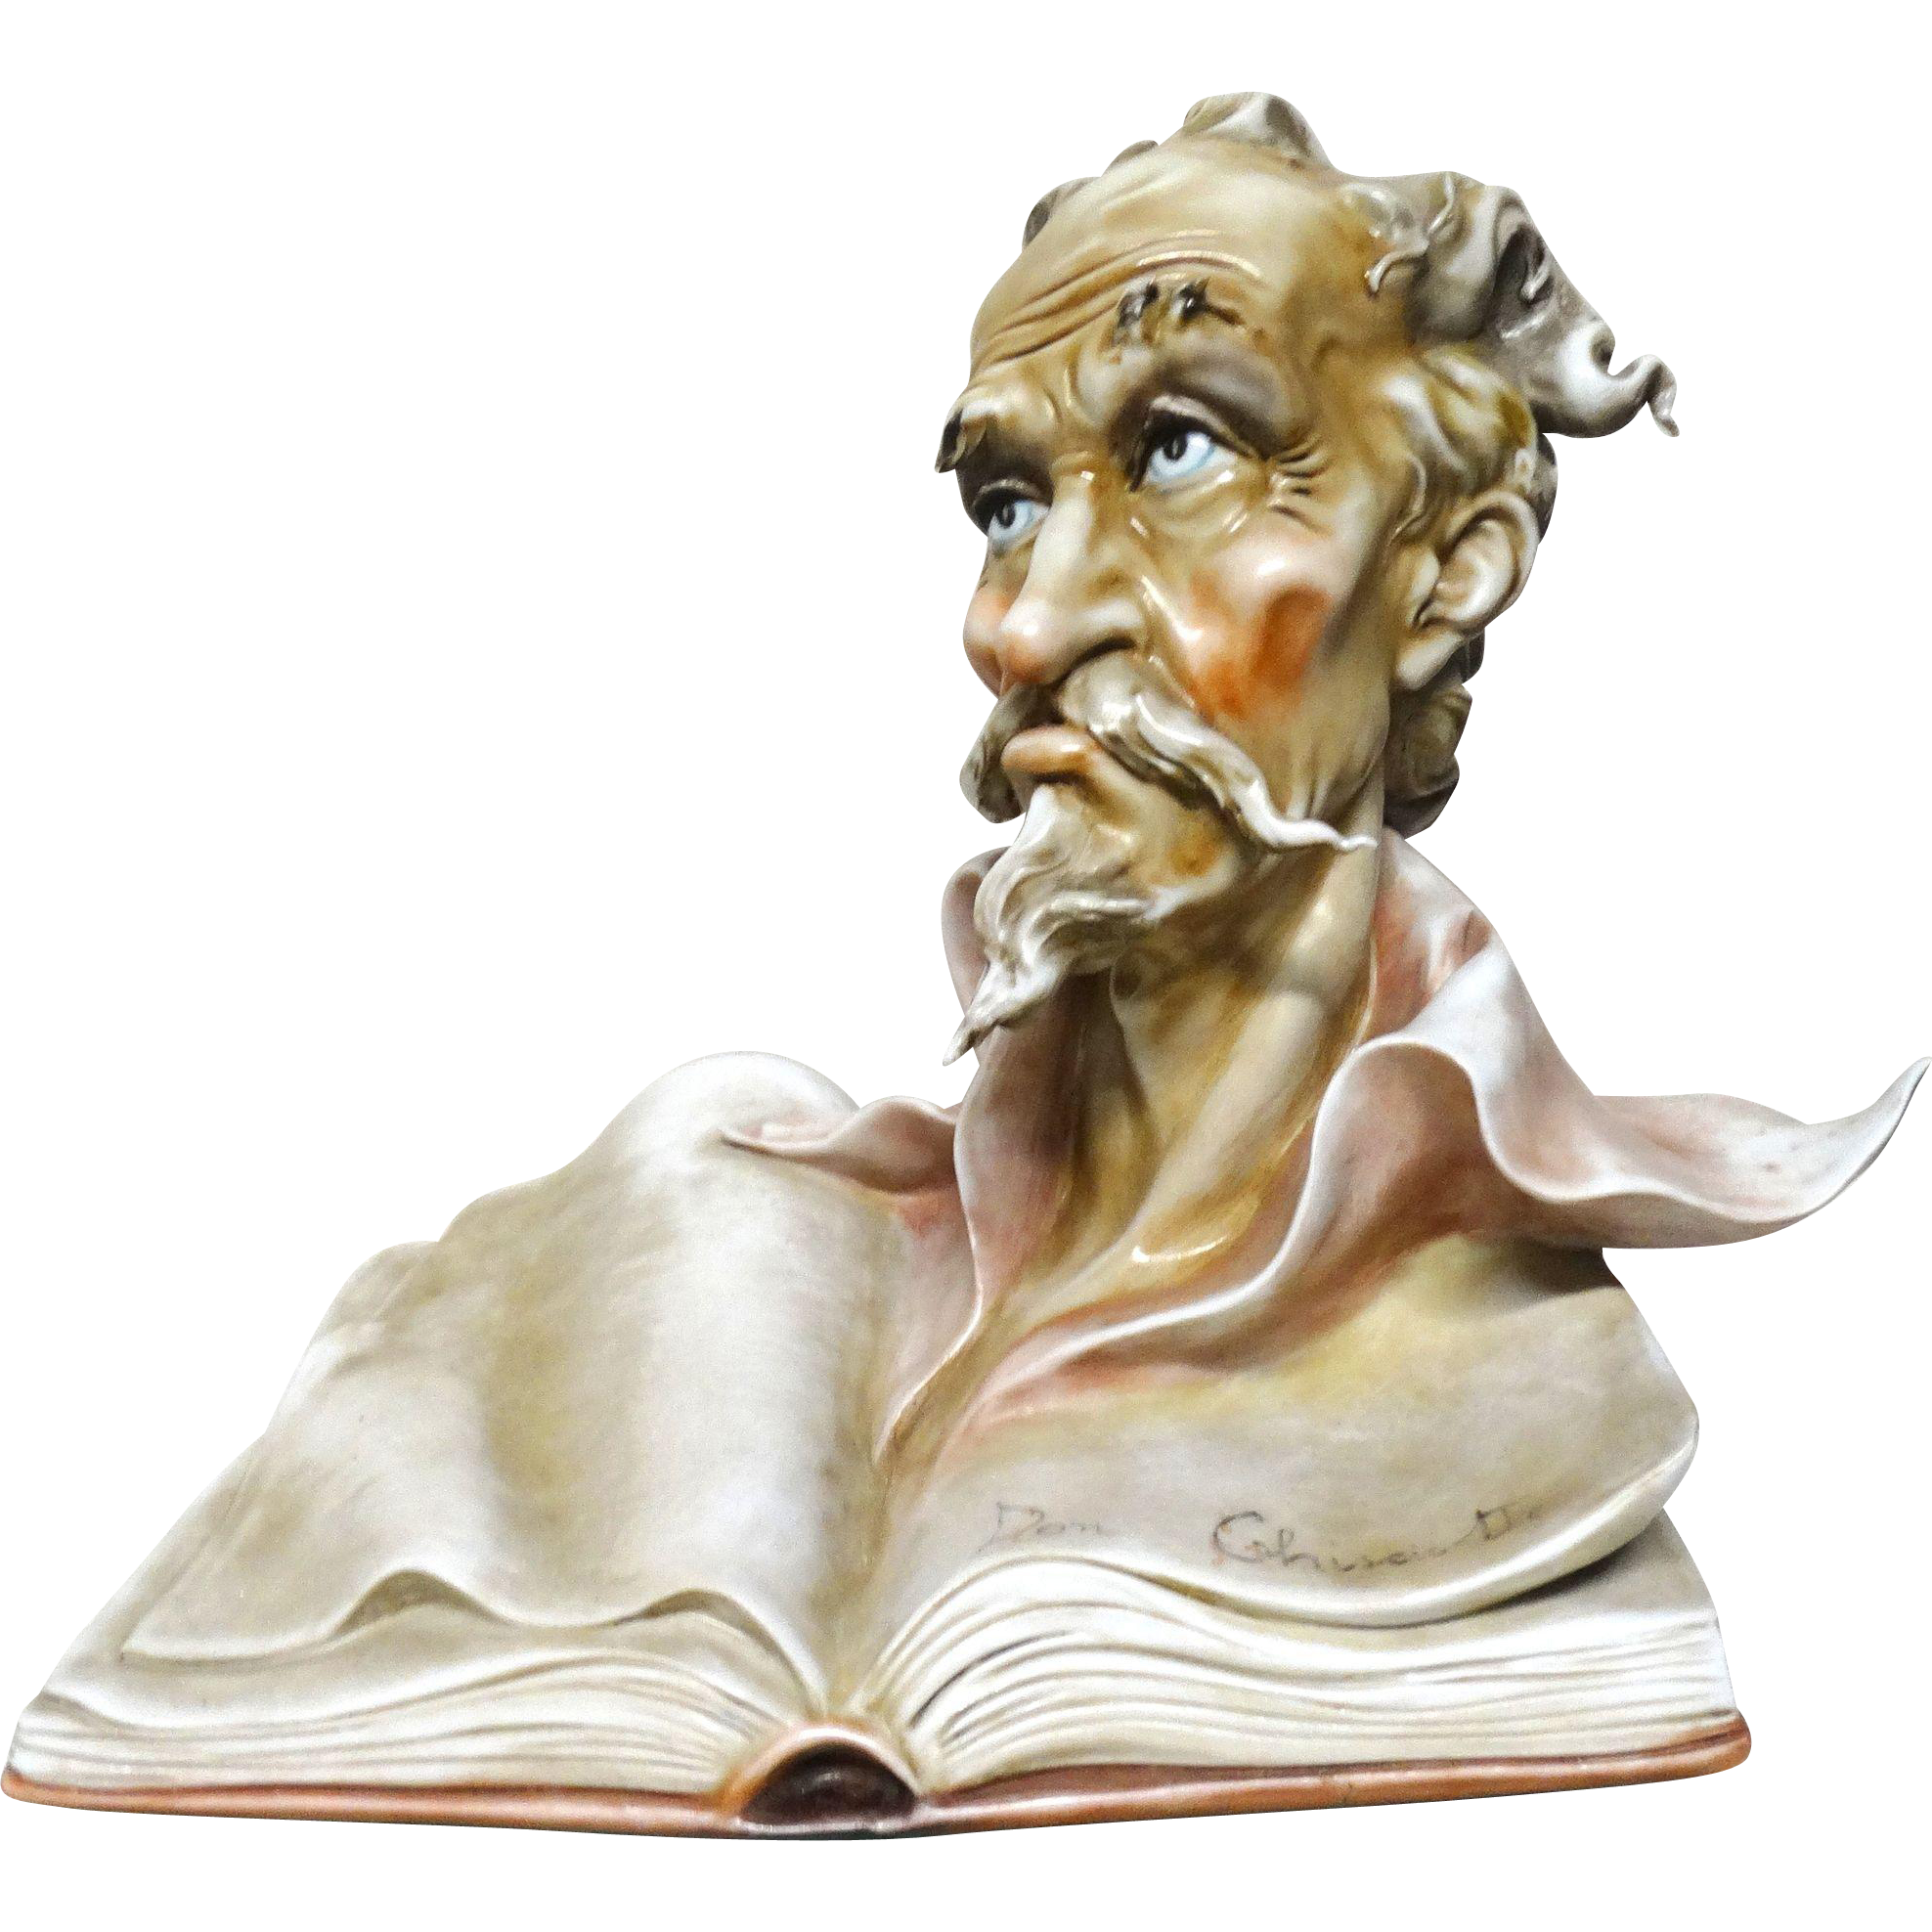 BORSATO (Italian, 1911 - 1982) - Don Quixxote - Wonderful Porcelain by the Master!